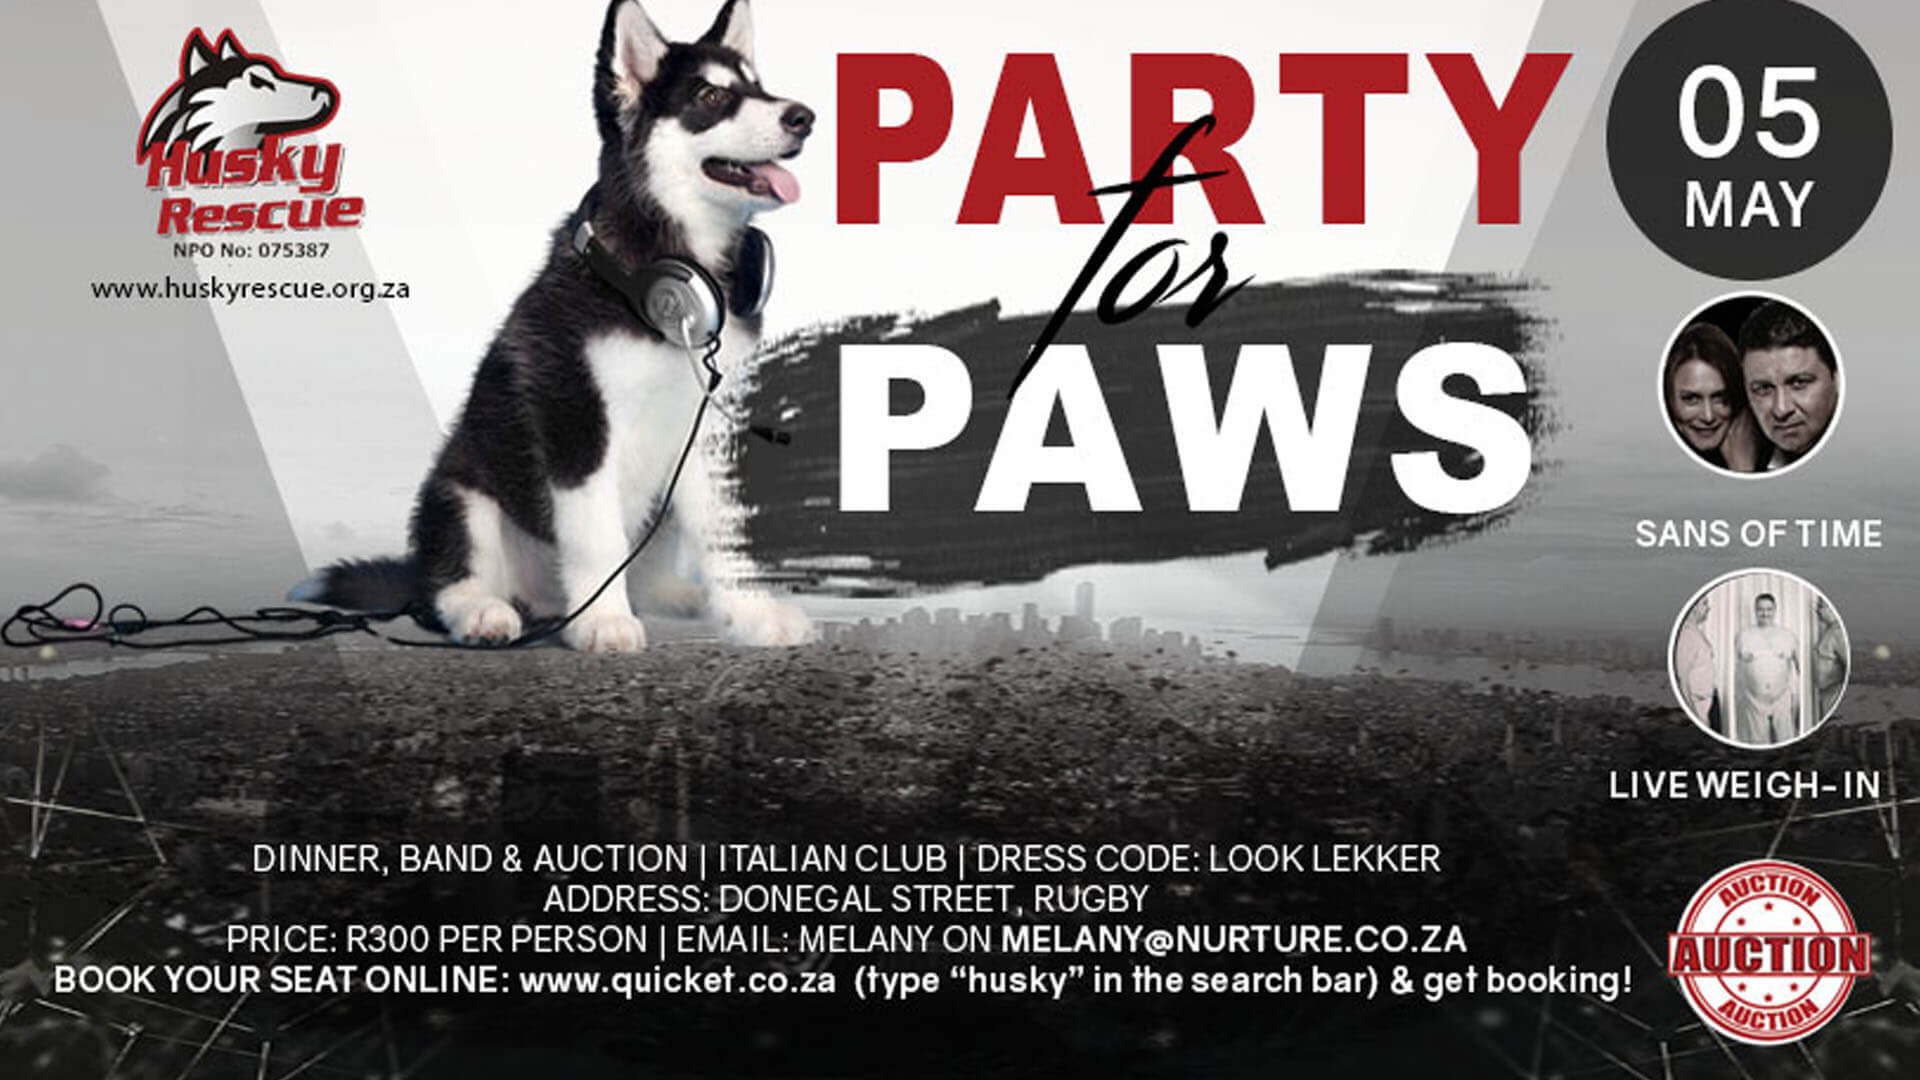 Party for Paws Cape Town - Husky Rescue South Africa